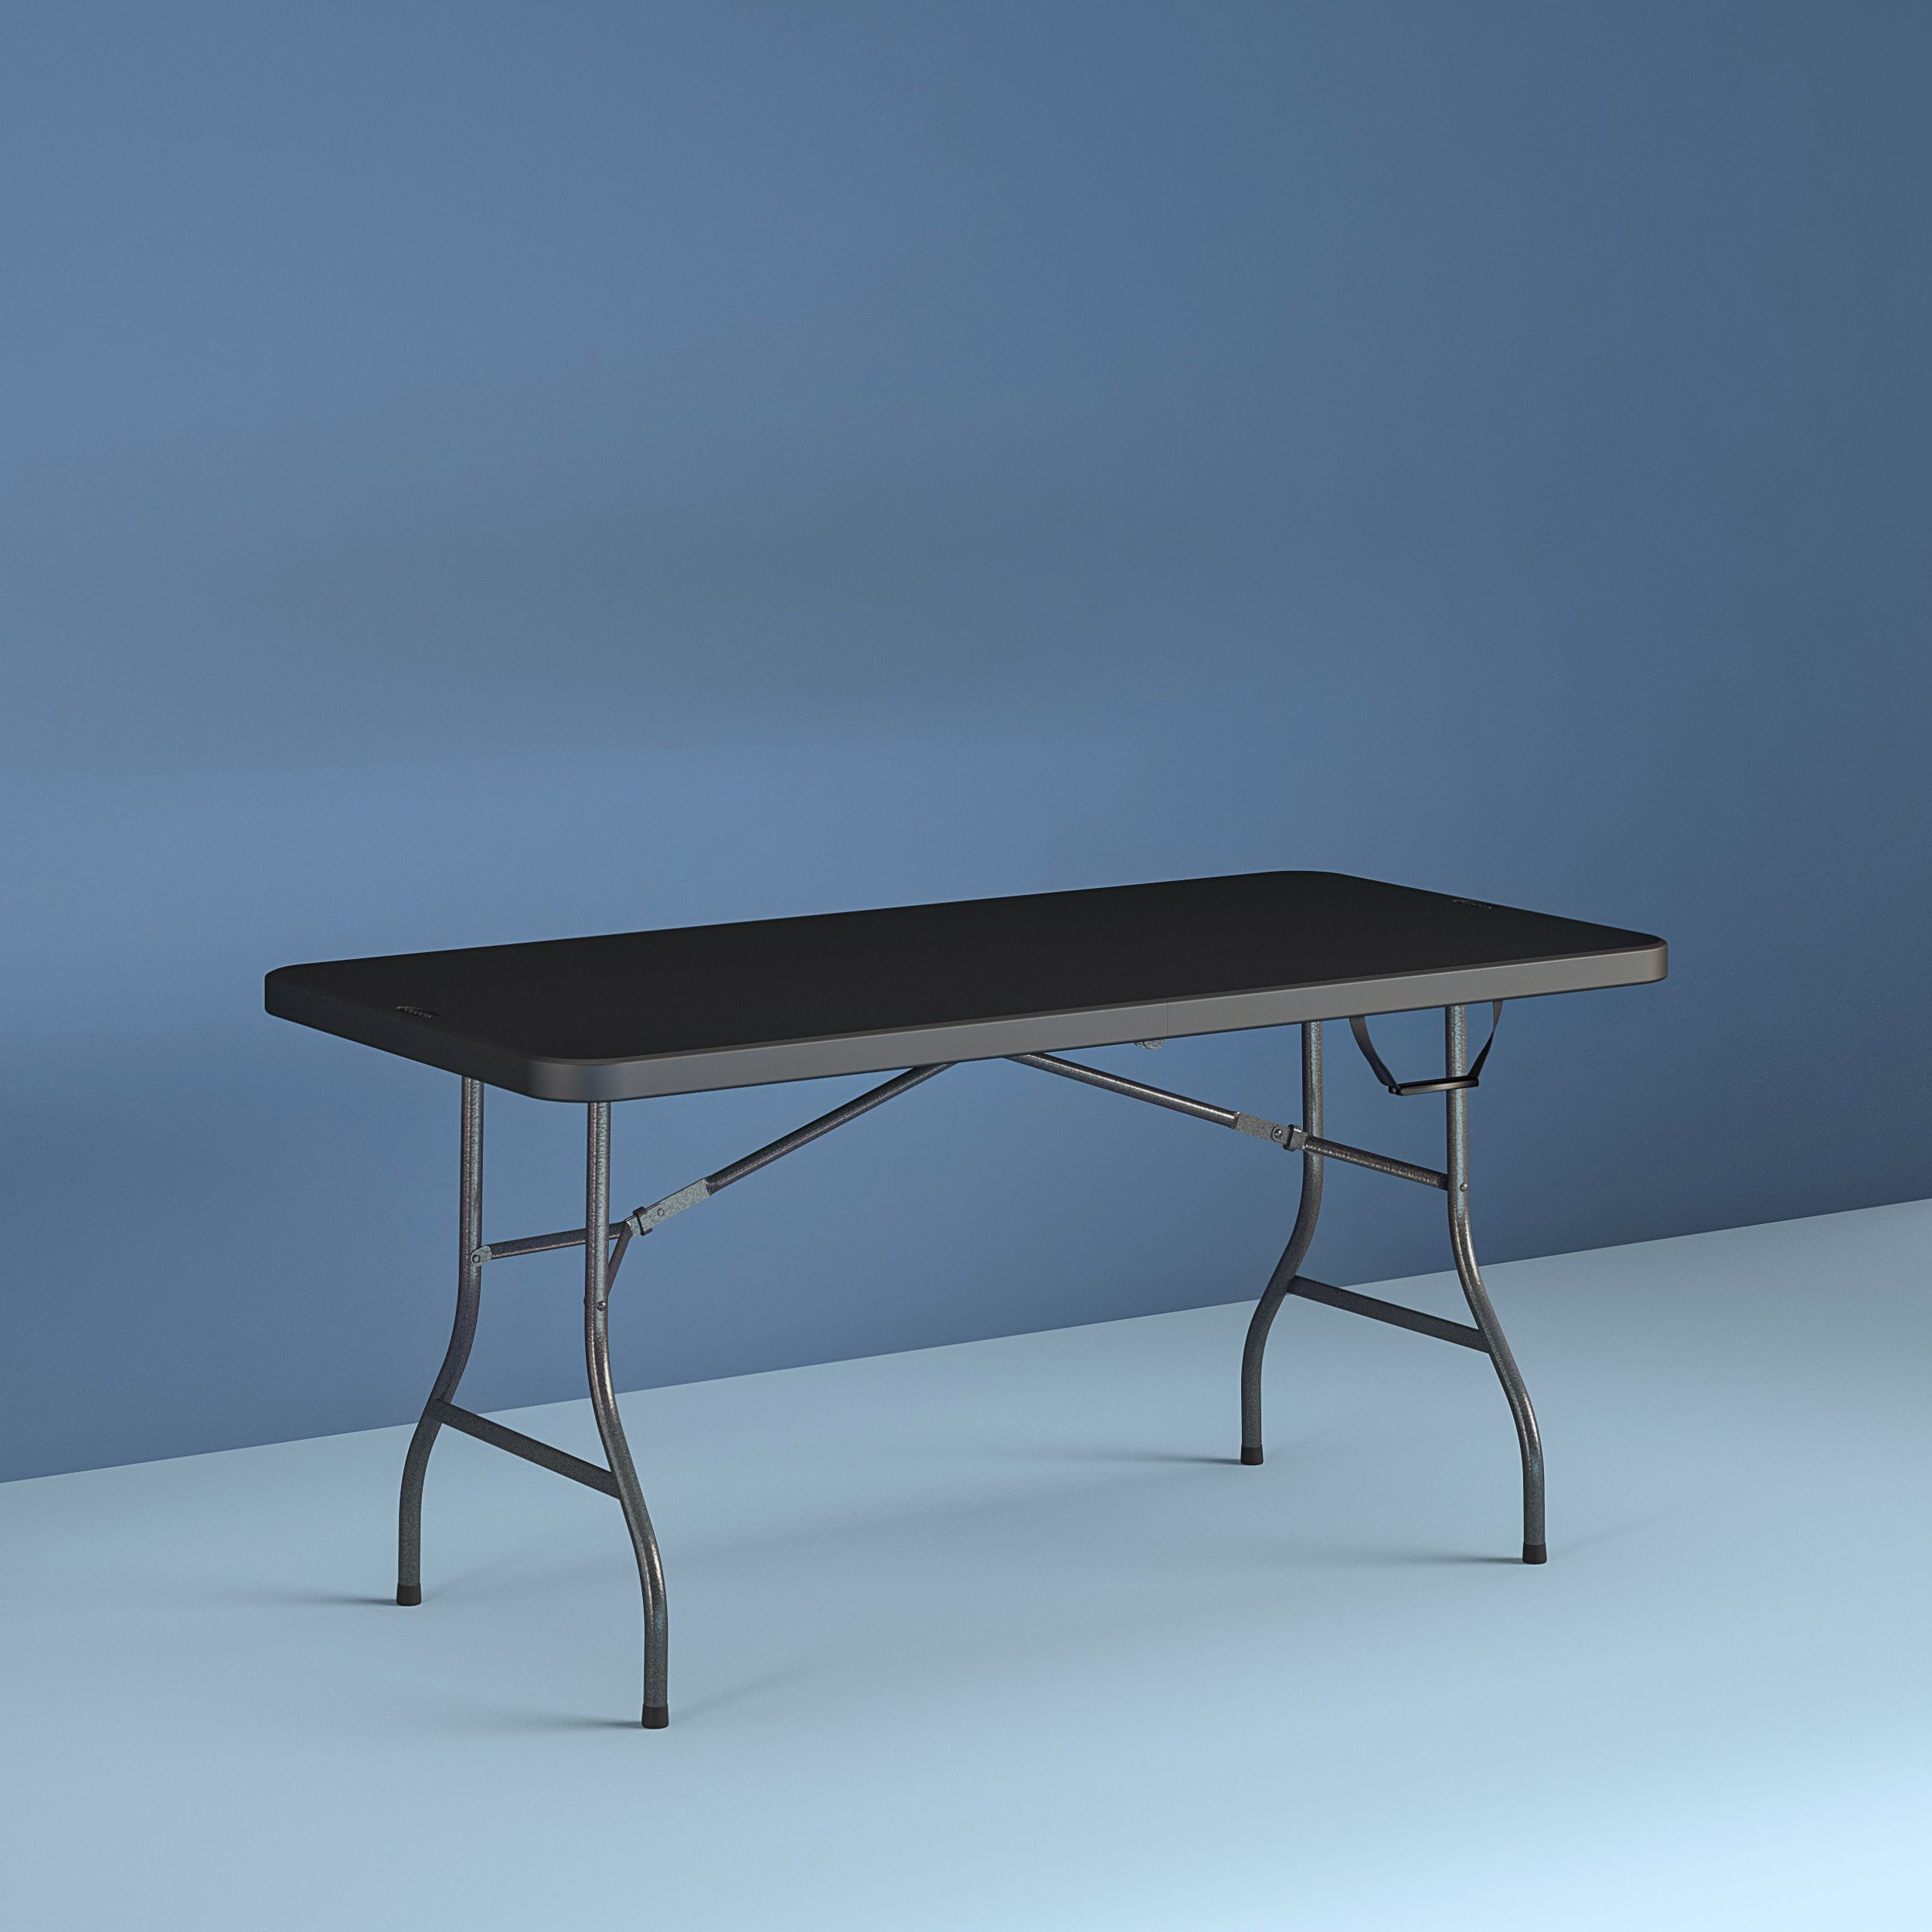 Cosco 6 Foot Centerfold Folding Table Black Walmart Com In 2020 Folding Table Cosco Table